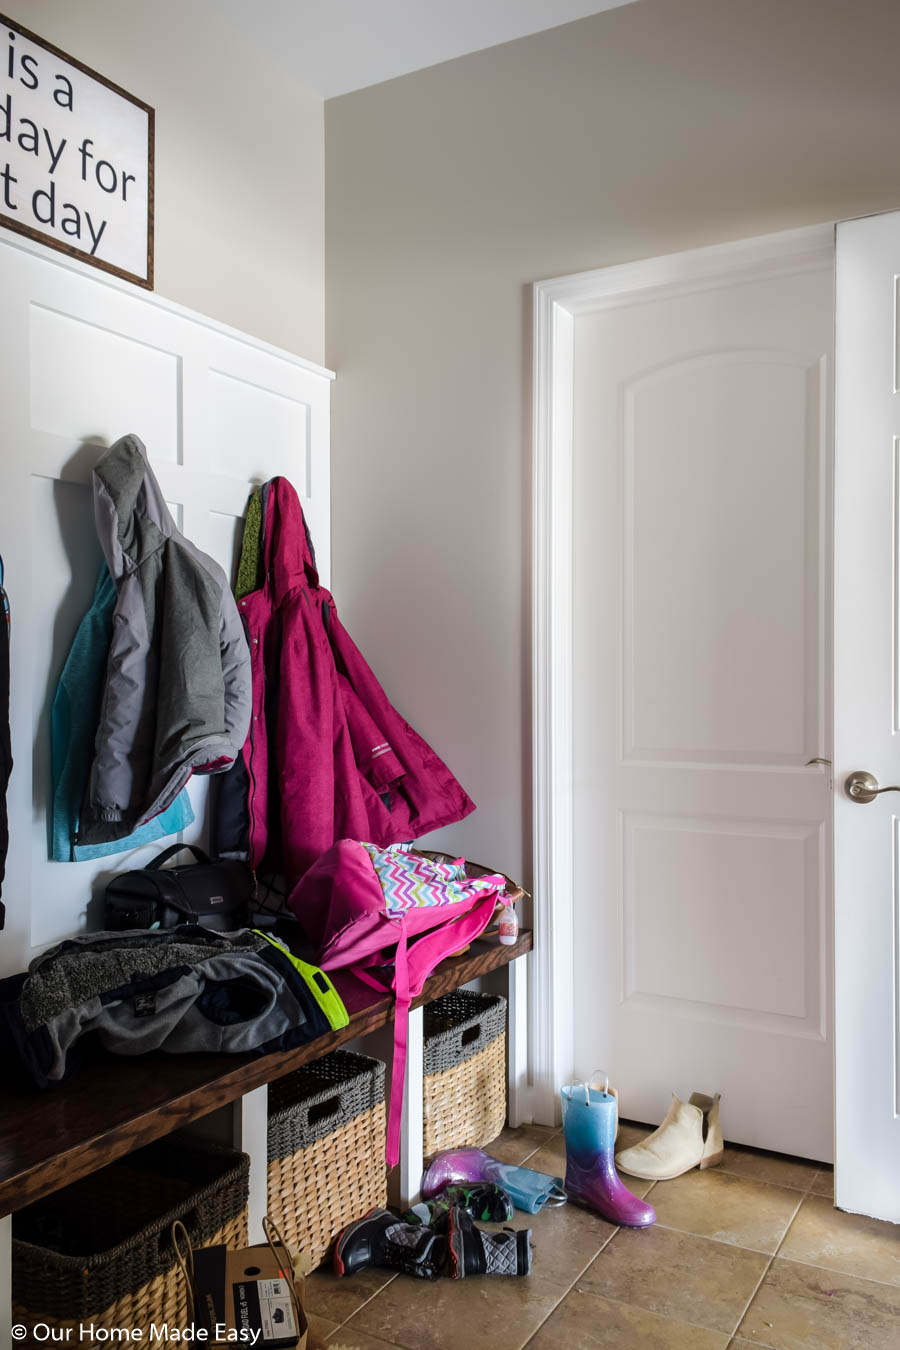 The first step to organizing your mudroom is to declutter--keep only what you need in there